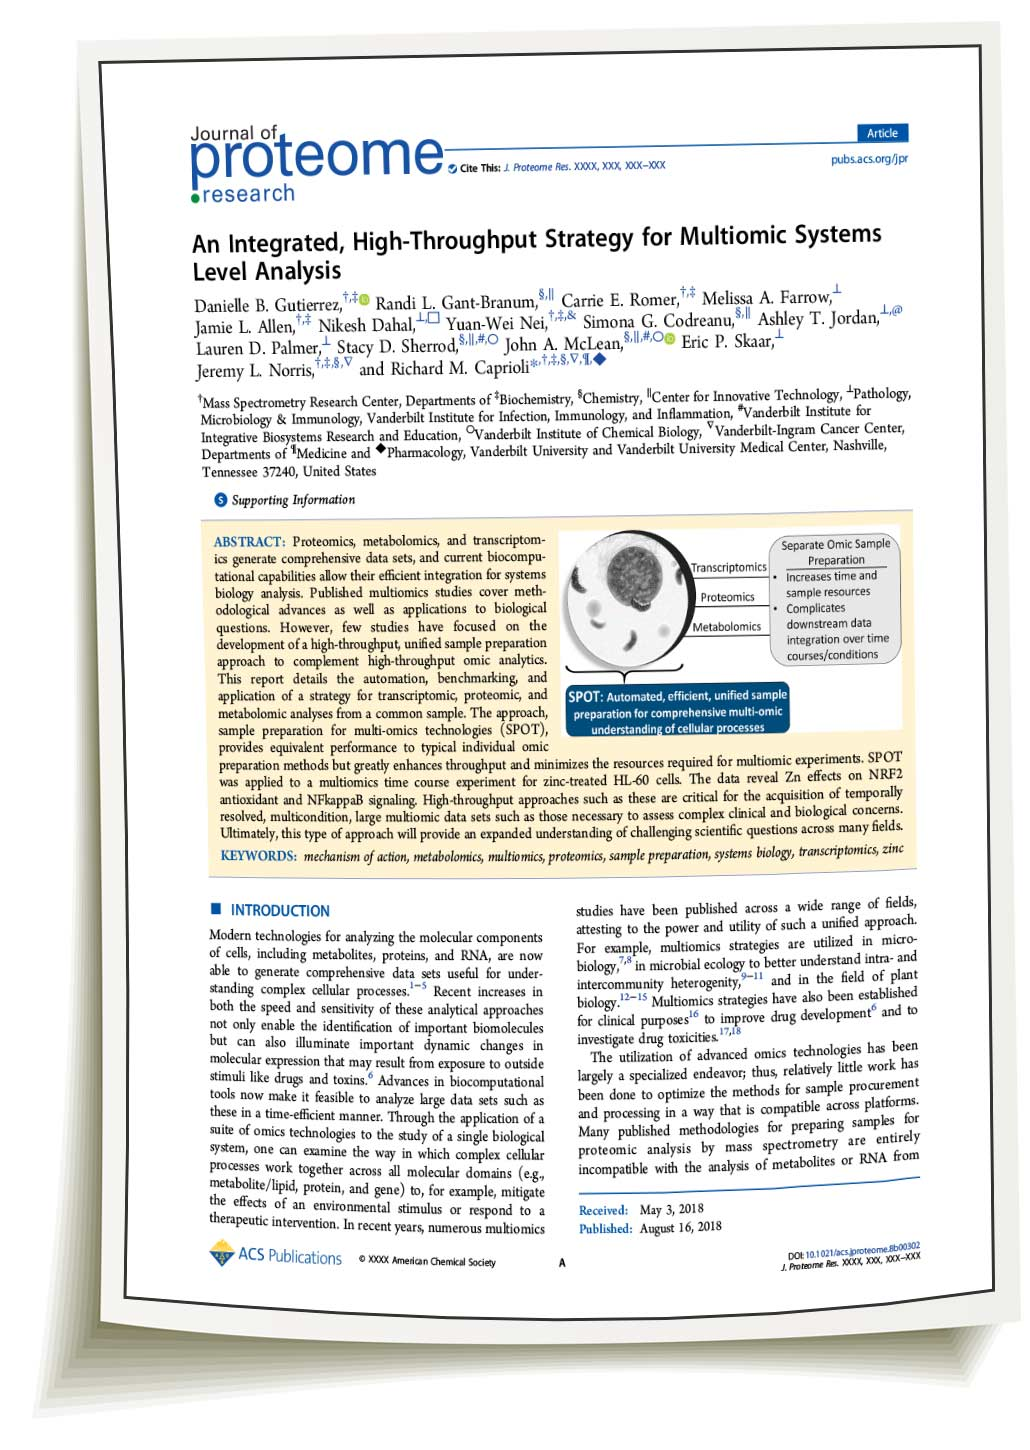 Rapid Digestion Trypsin in J. Proteome Research